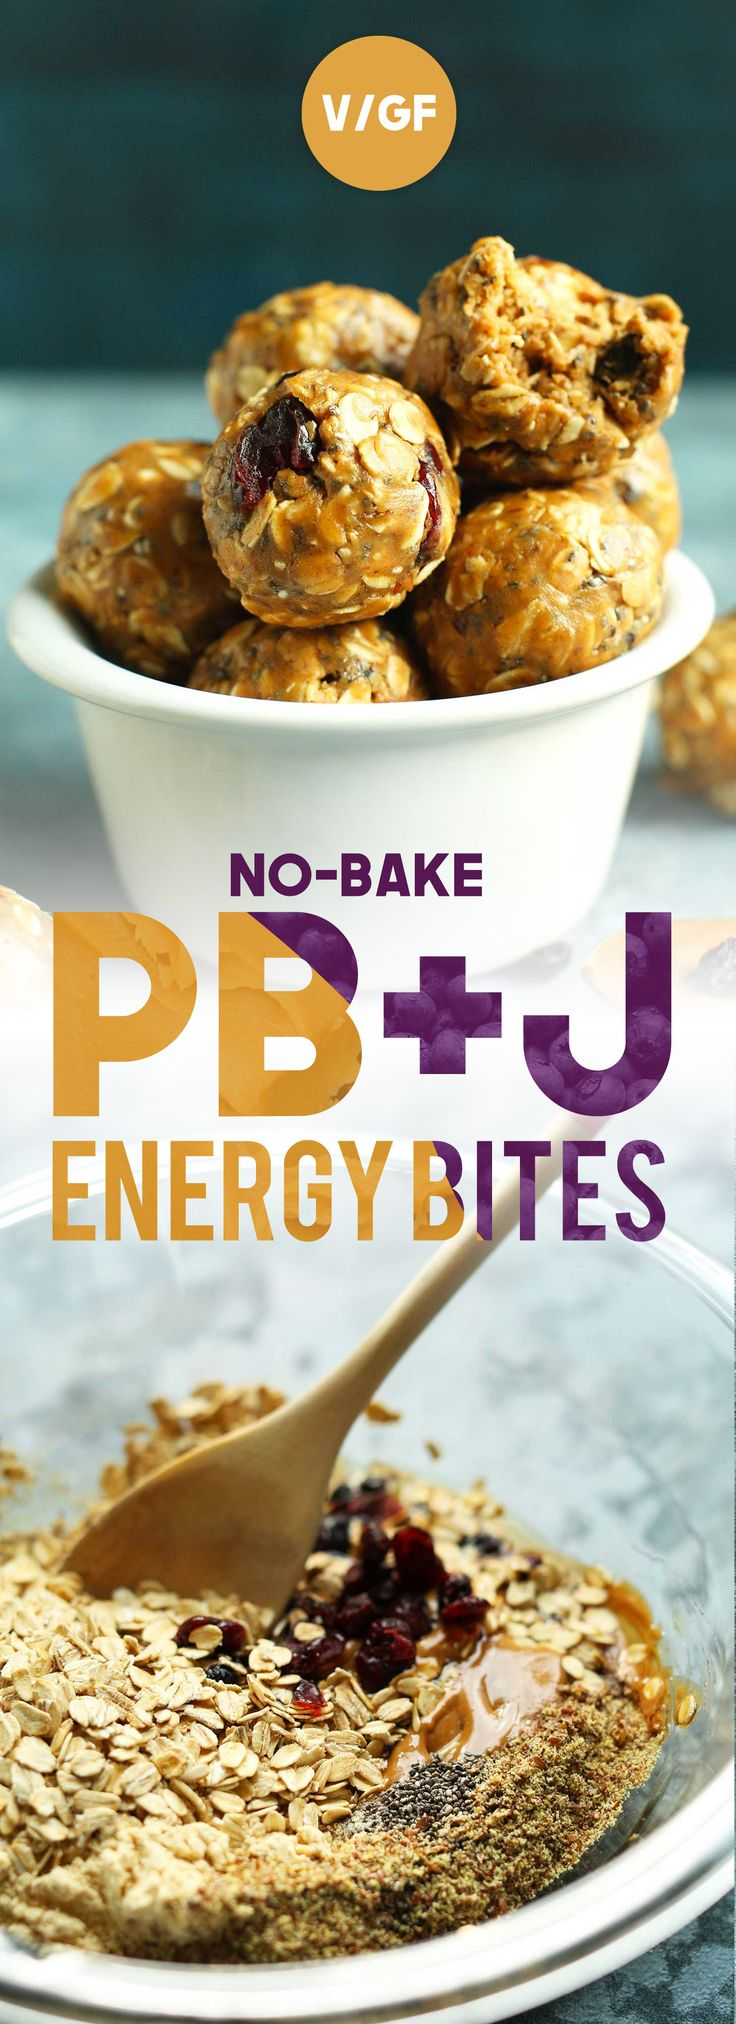 7-ingredient, 15-minute energy bites made with wholesome ingredients and infused with the flavors of peanut butter and jelly! An easy, healthy snack!